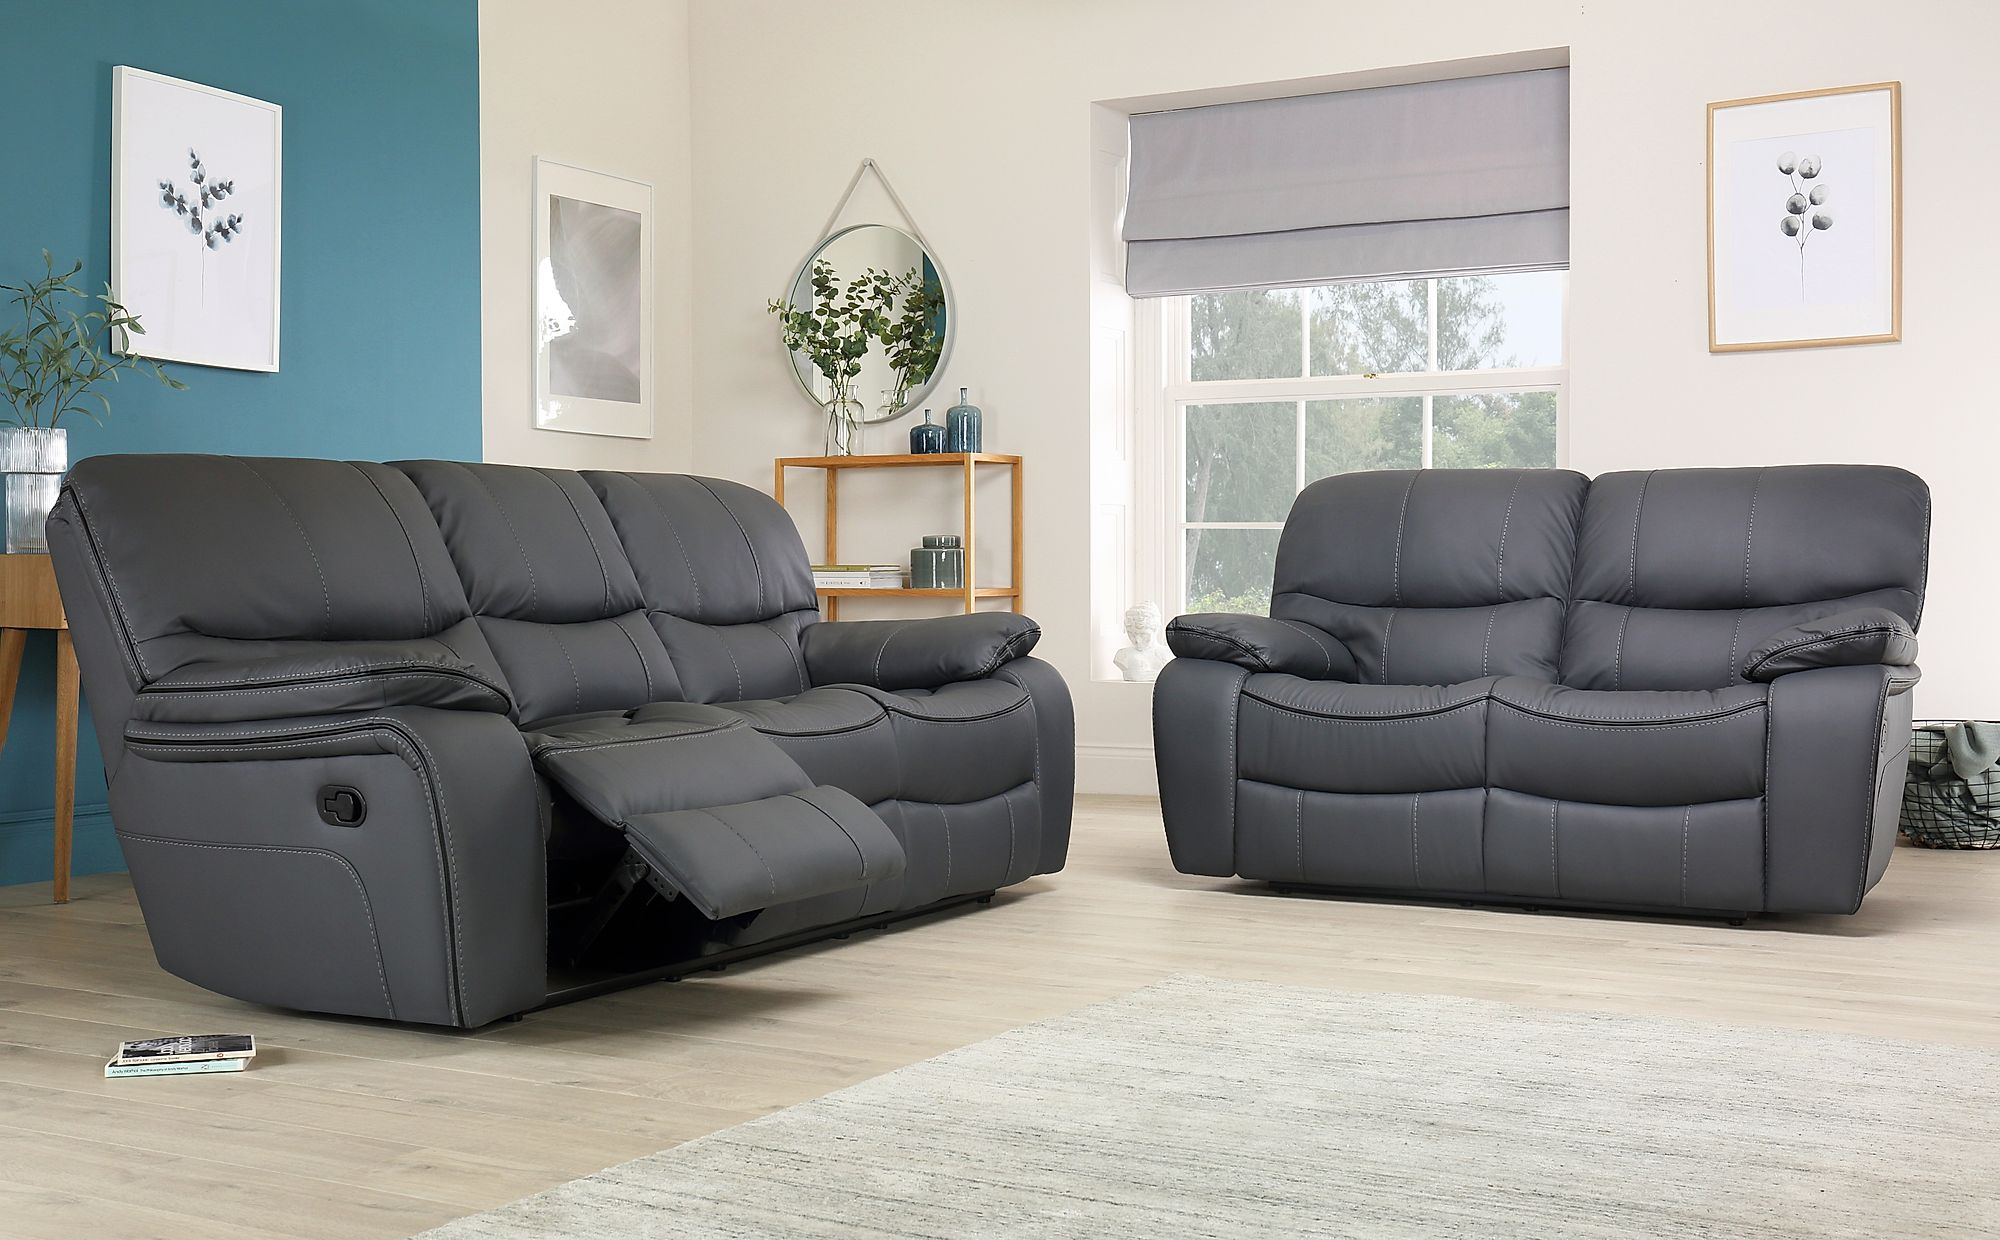 Beaumont Grey Leather Recliner Sofa 3 2 Seater Only 163 1099